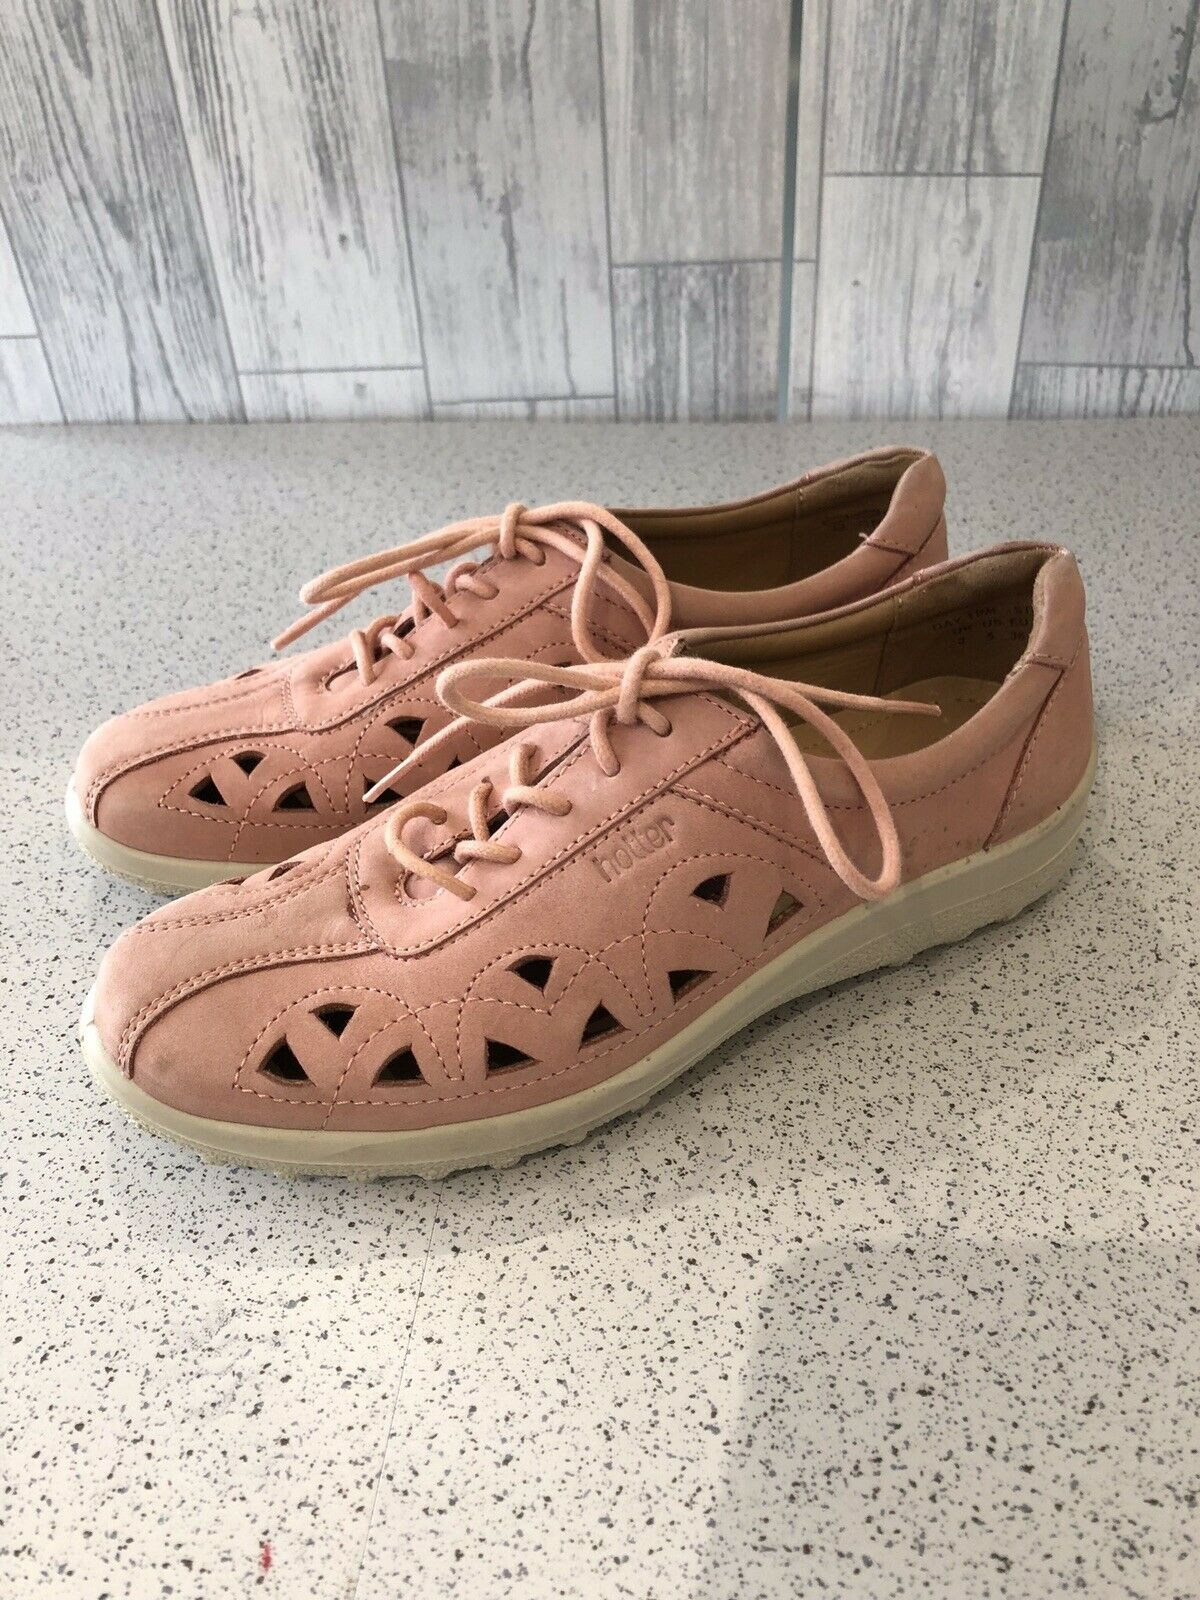 Hotter Pink Suede Lace Up Flat shoes With Cut Out Detail Uk3 36